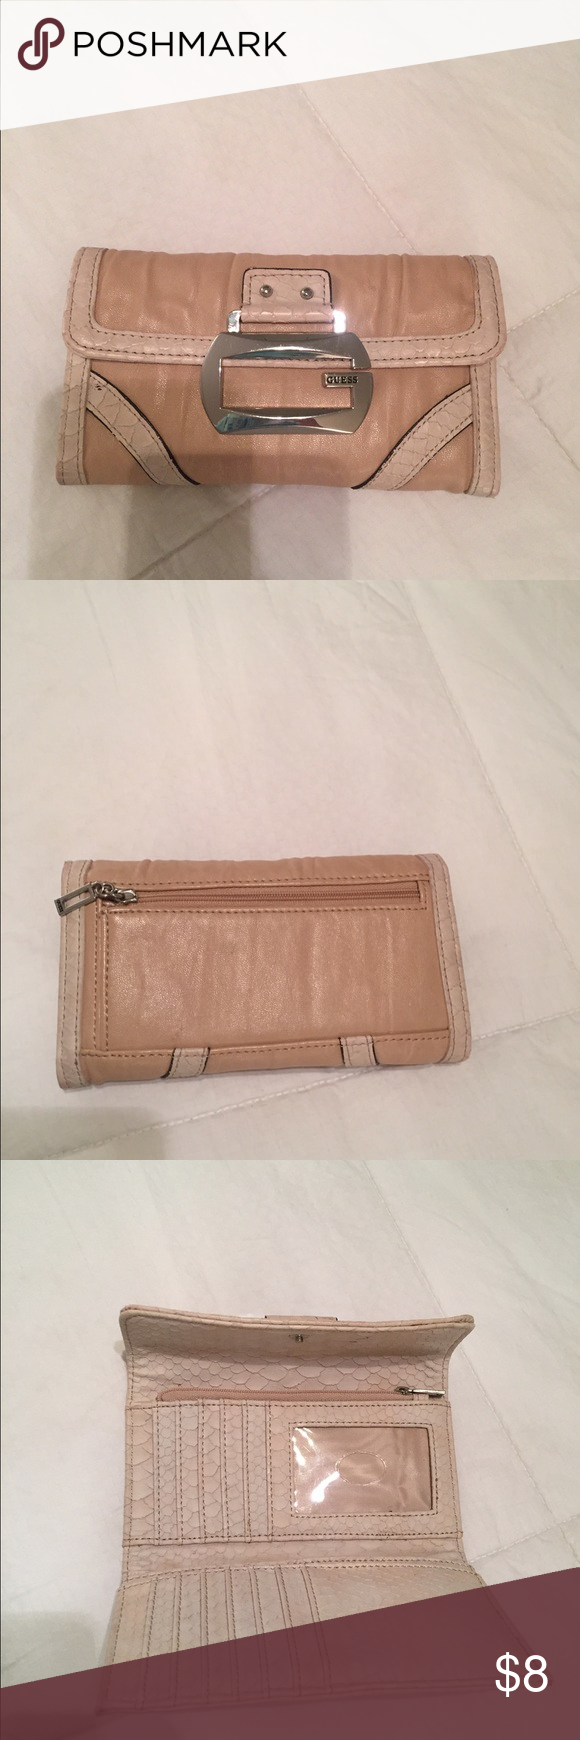 Guess Wallet Guess wallet in excellent condition! G by Guess Accessories